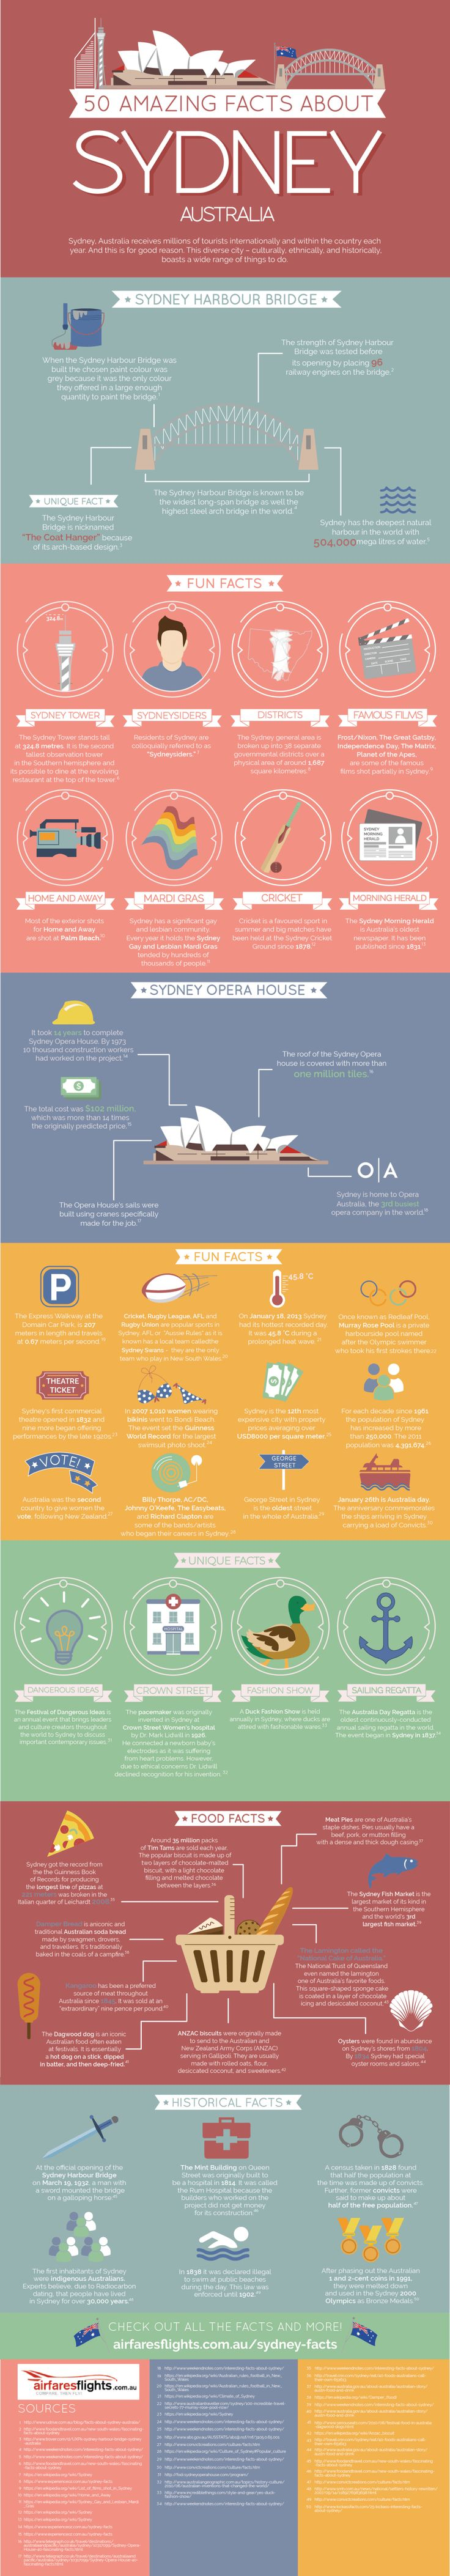 75 Facts About Sydney